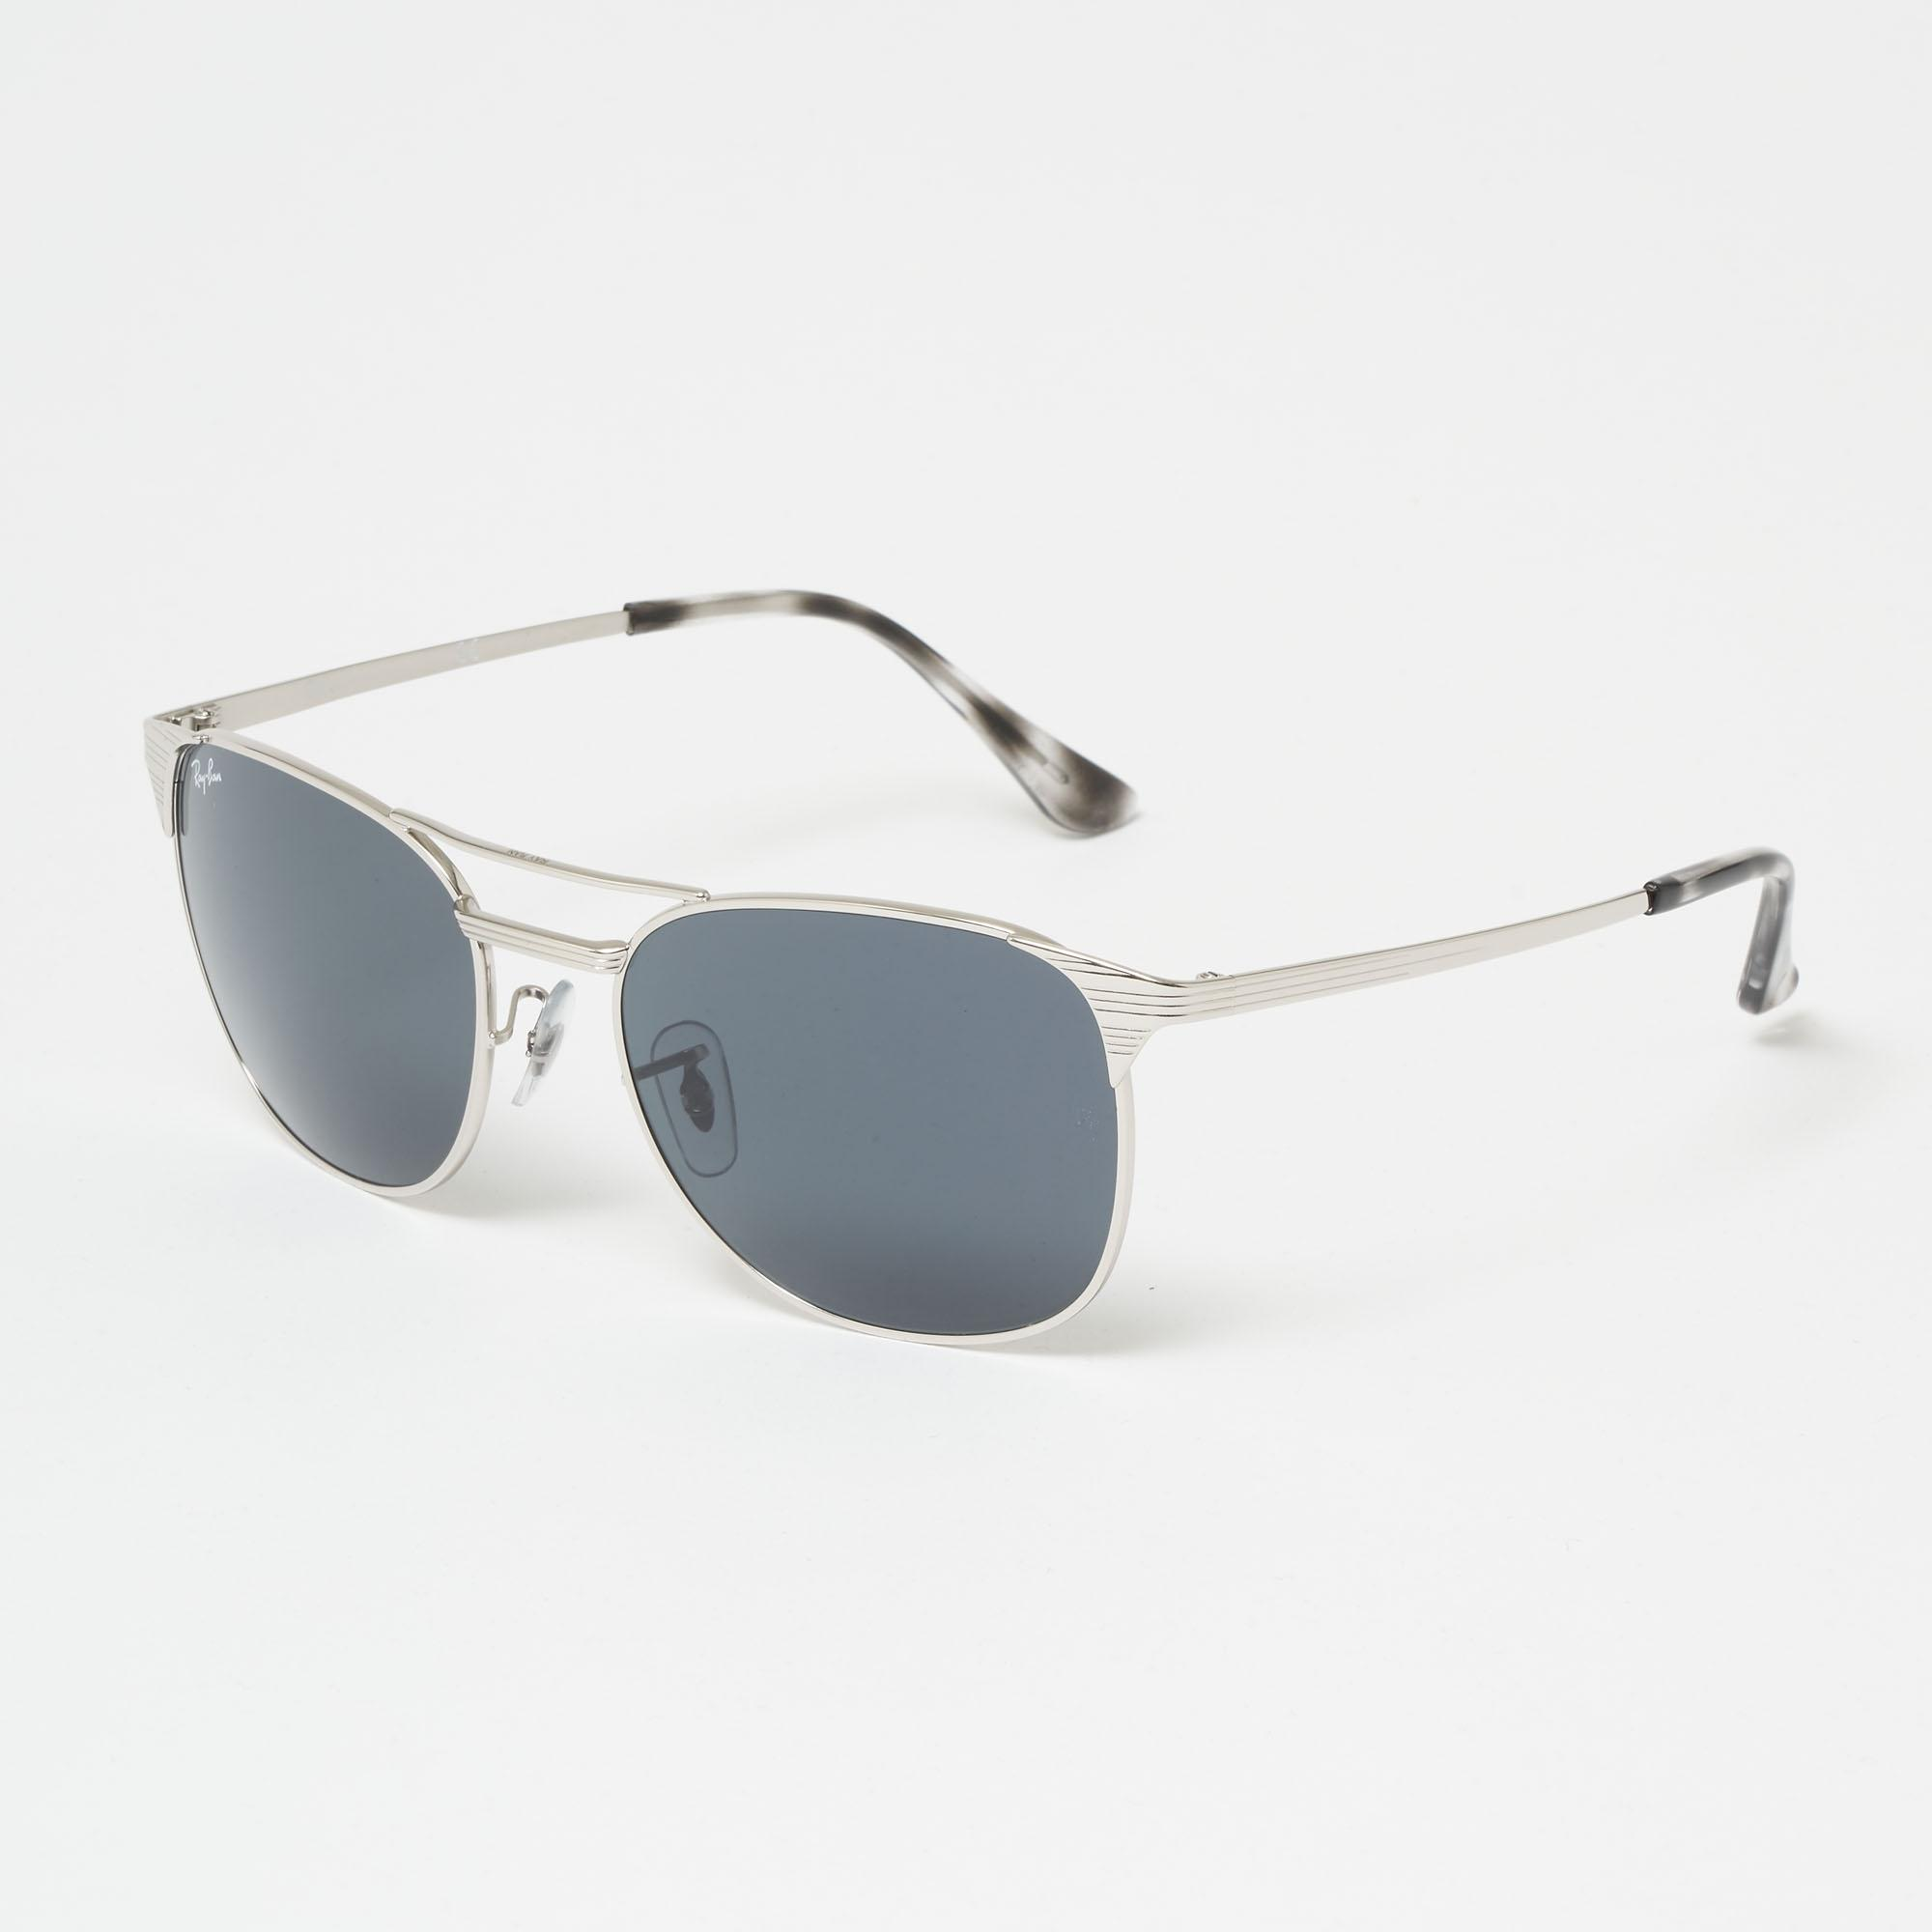 a31e31e21d Lyst - Ray-Ban Chrome Signet Sunglasses - Blue gray Classic Lenses ...